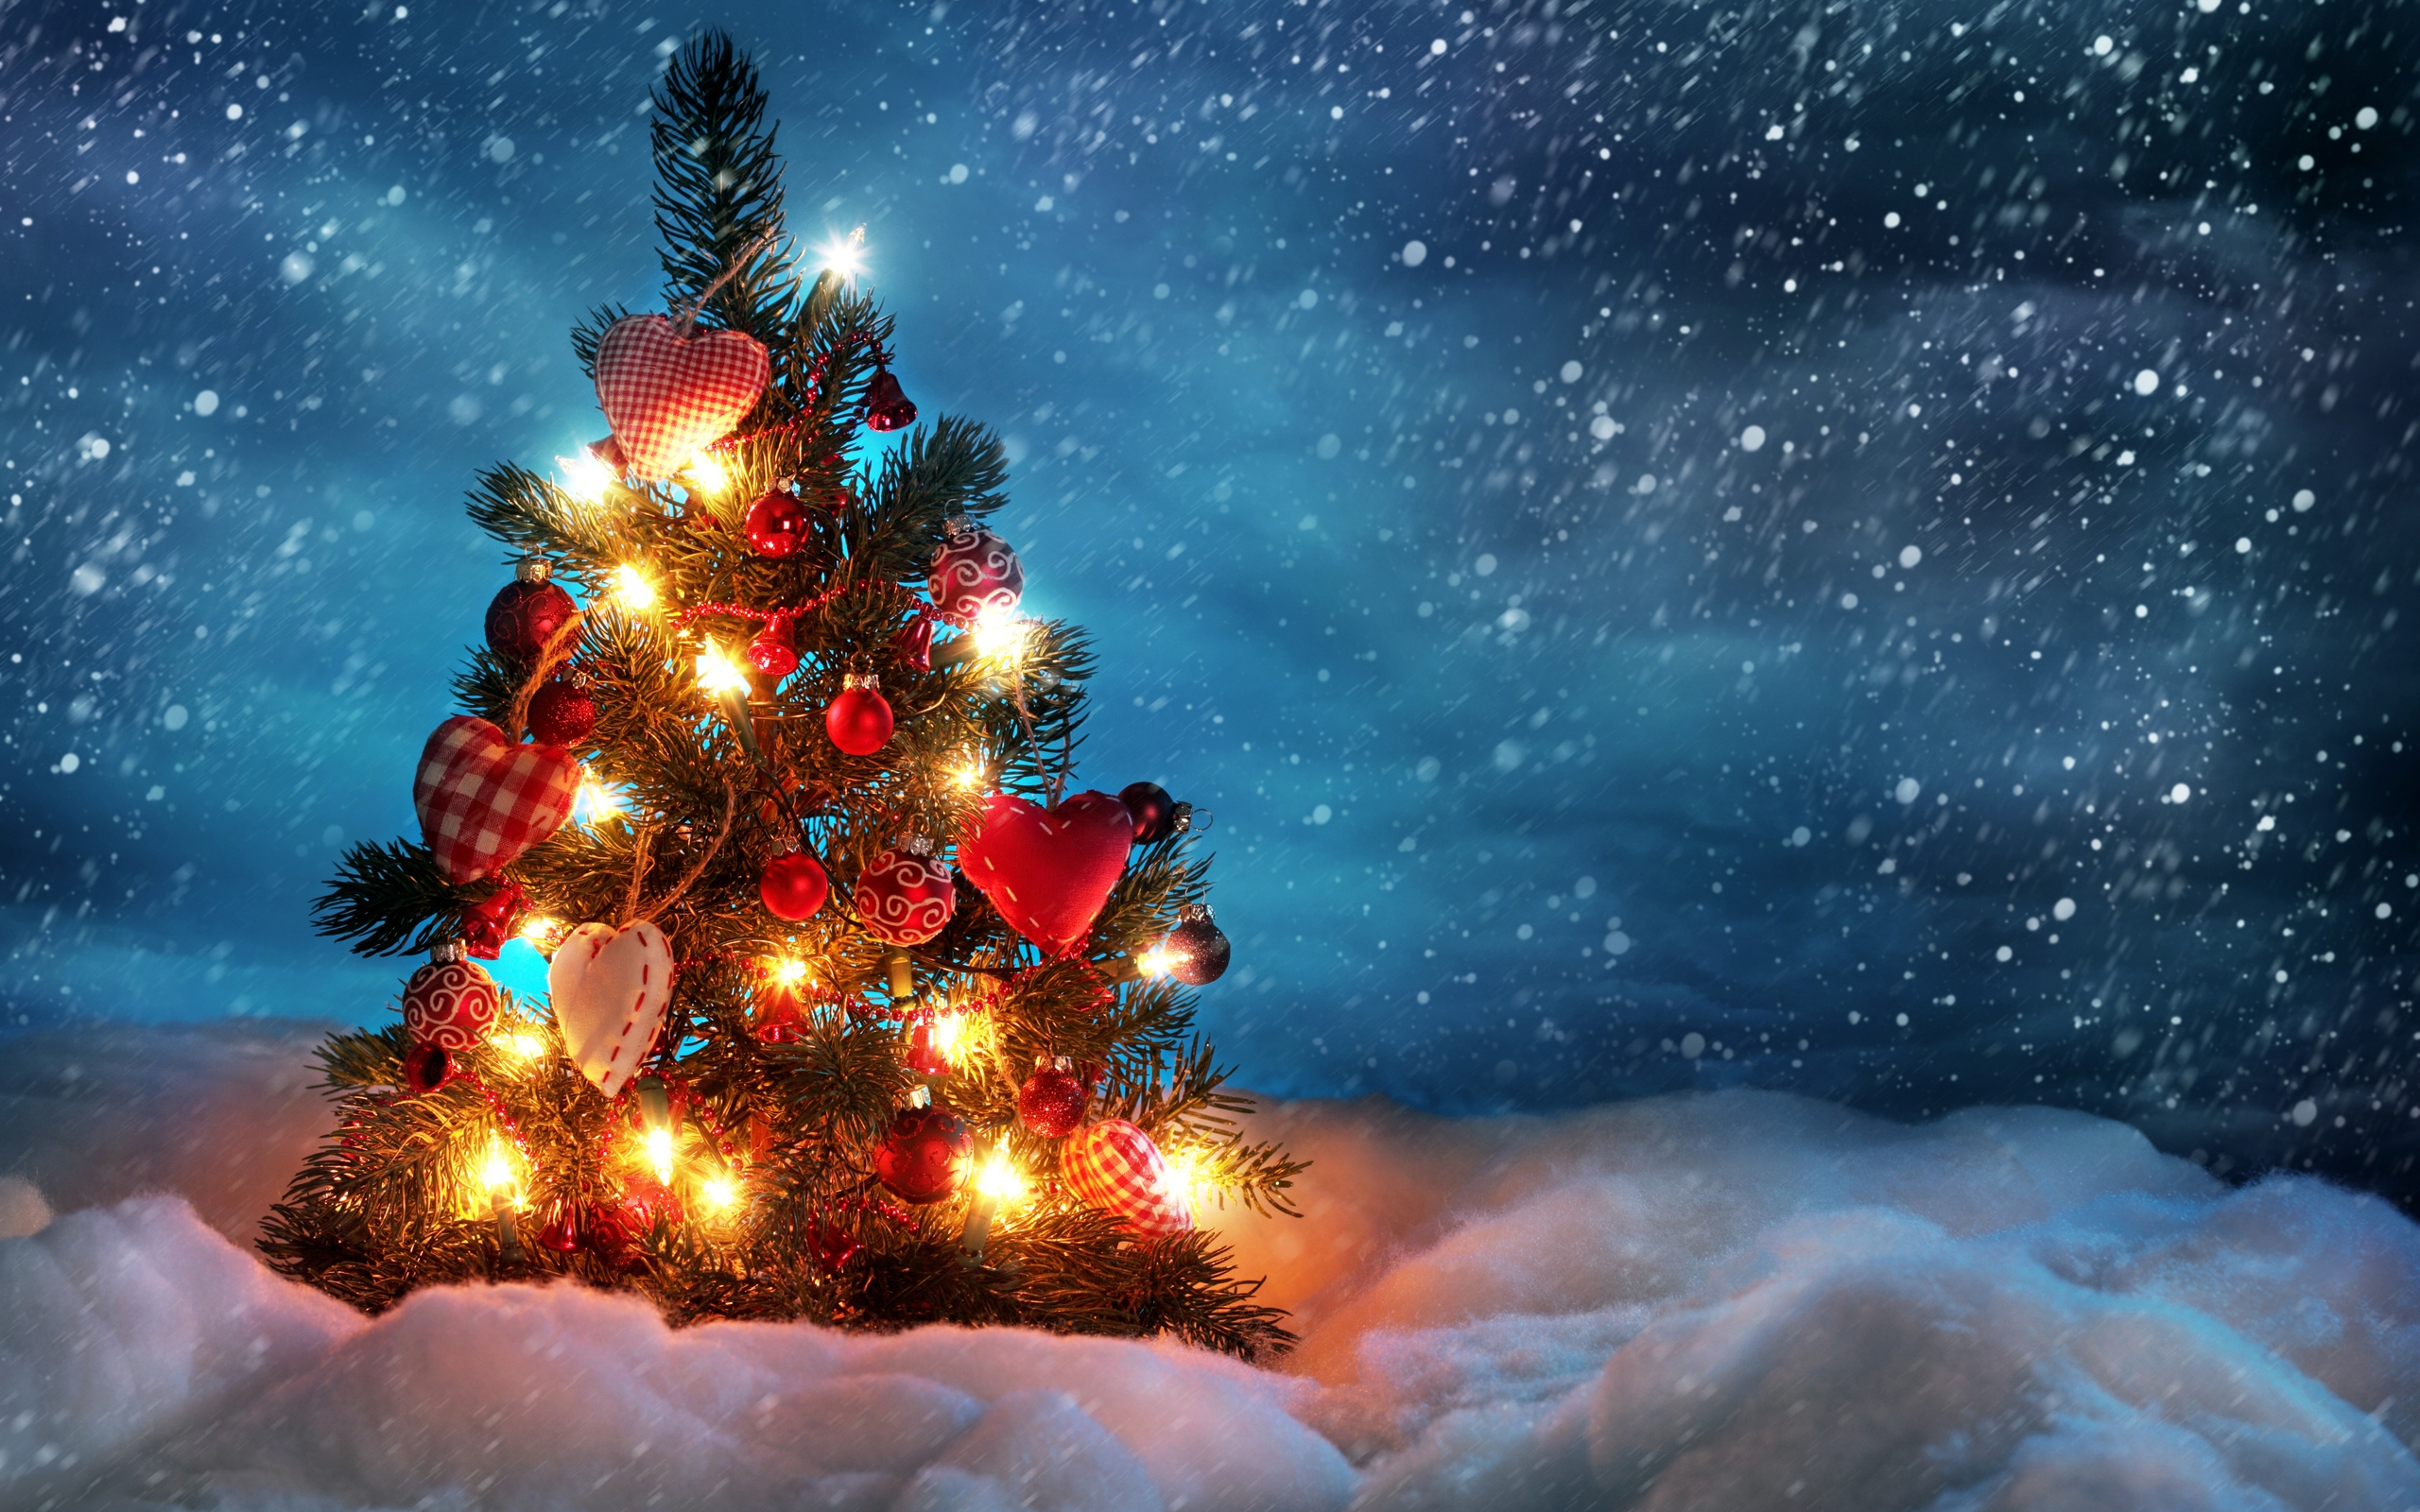 Christmas Tree Desktop Wallpaper